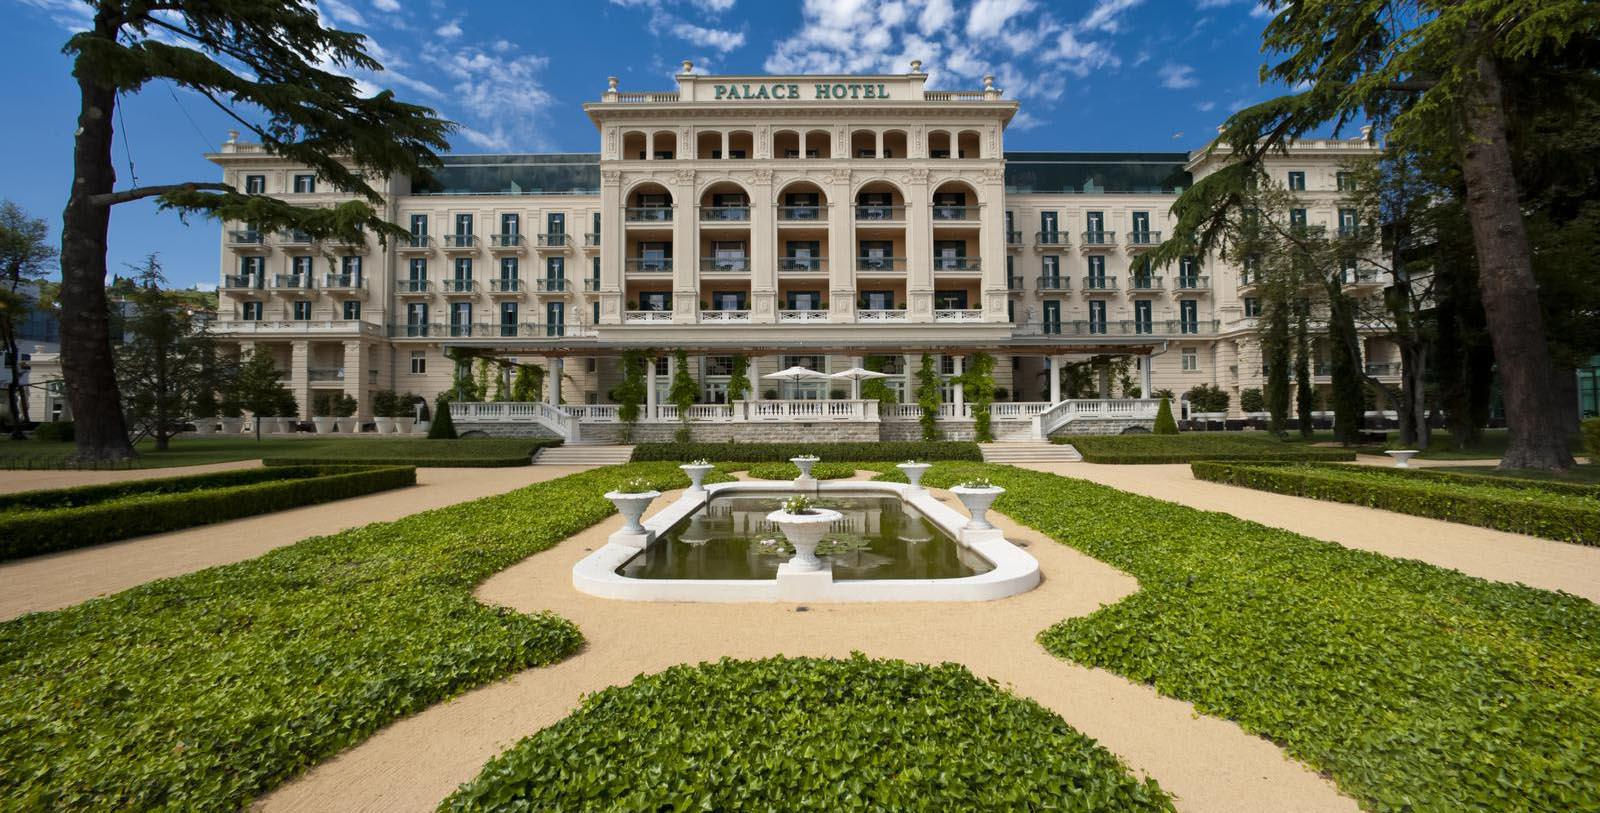 Image of Garden Kempinski Palace Portorož, 1908, Member of Historic Hotels Worldwide, in Portoroz, Slovenia, Special Offers, Discounted Rates, Families, Romantic Escape, Honeymoons, Anniversaries, Reunions